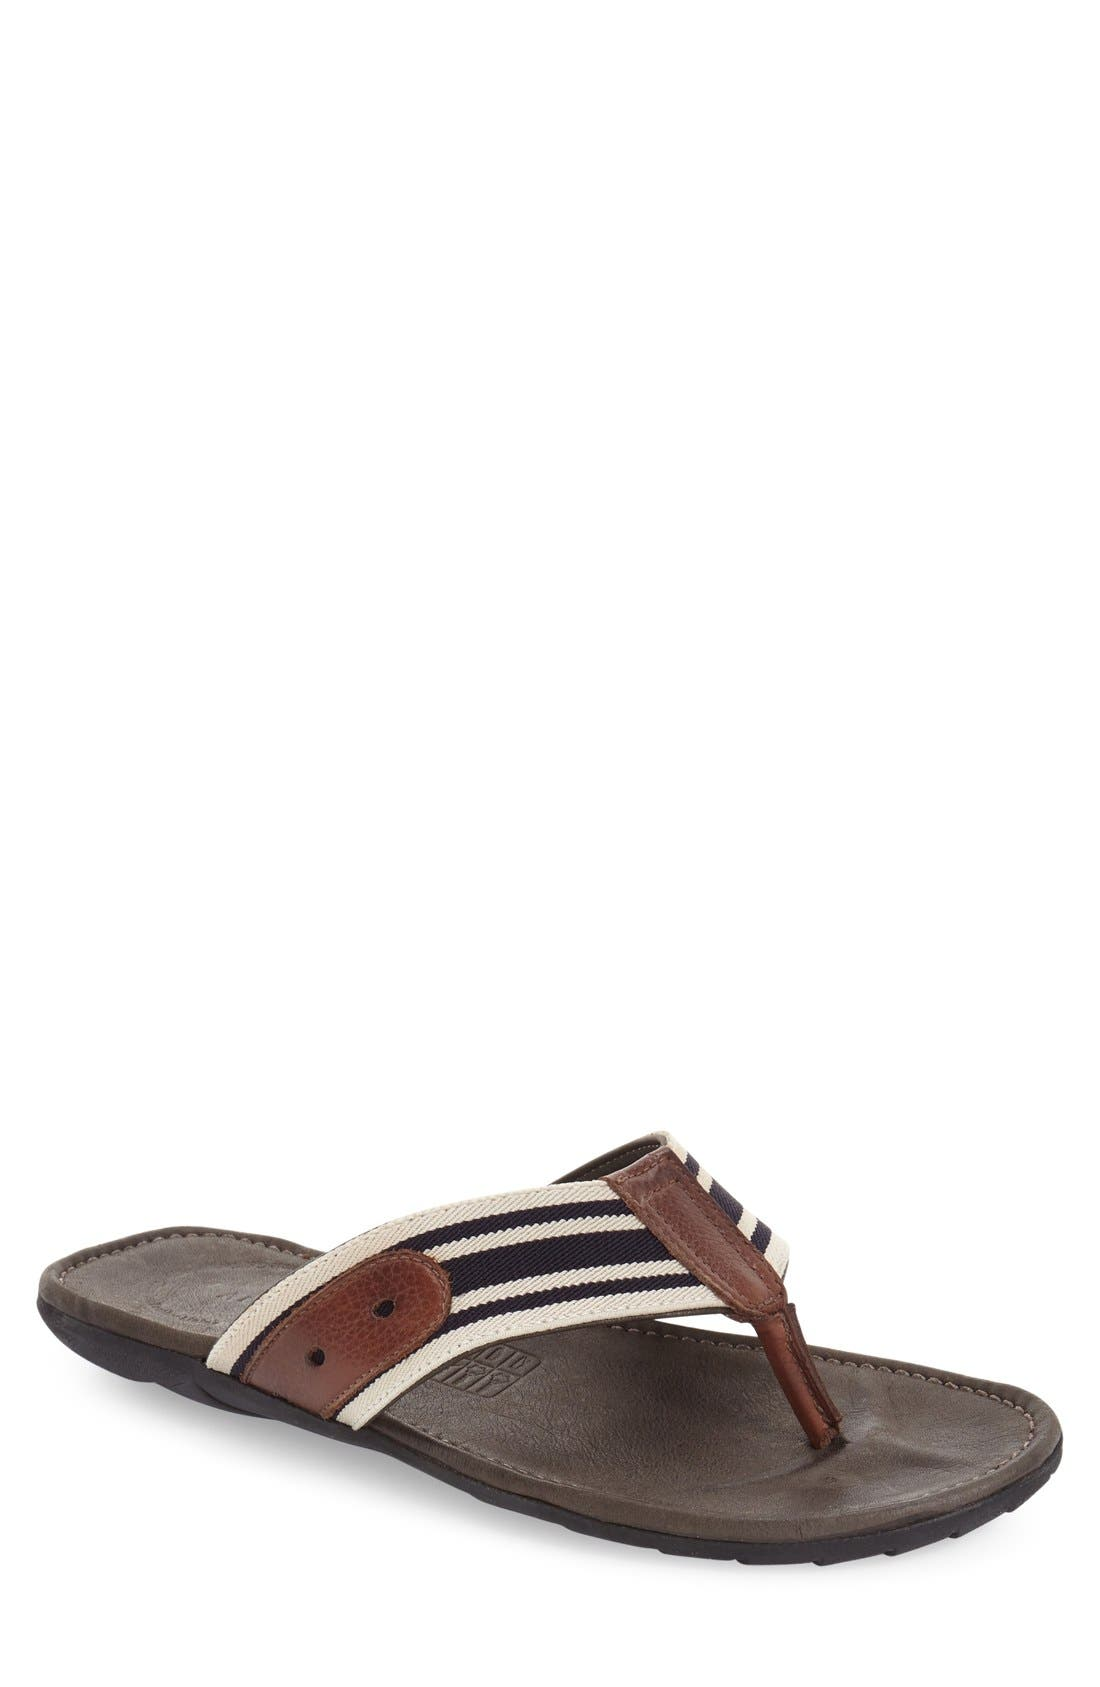 Anatomic & Co Paraiso Flip Flop (Men)